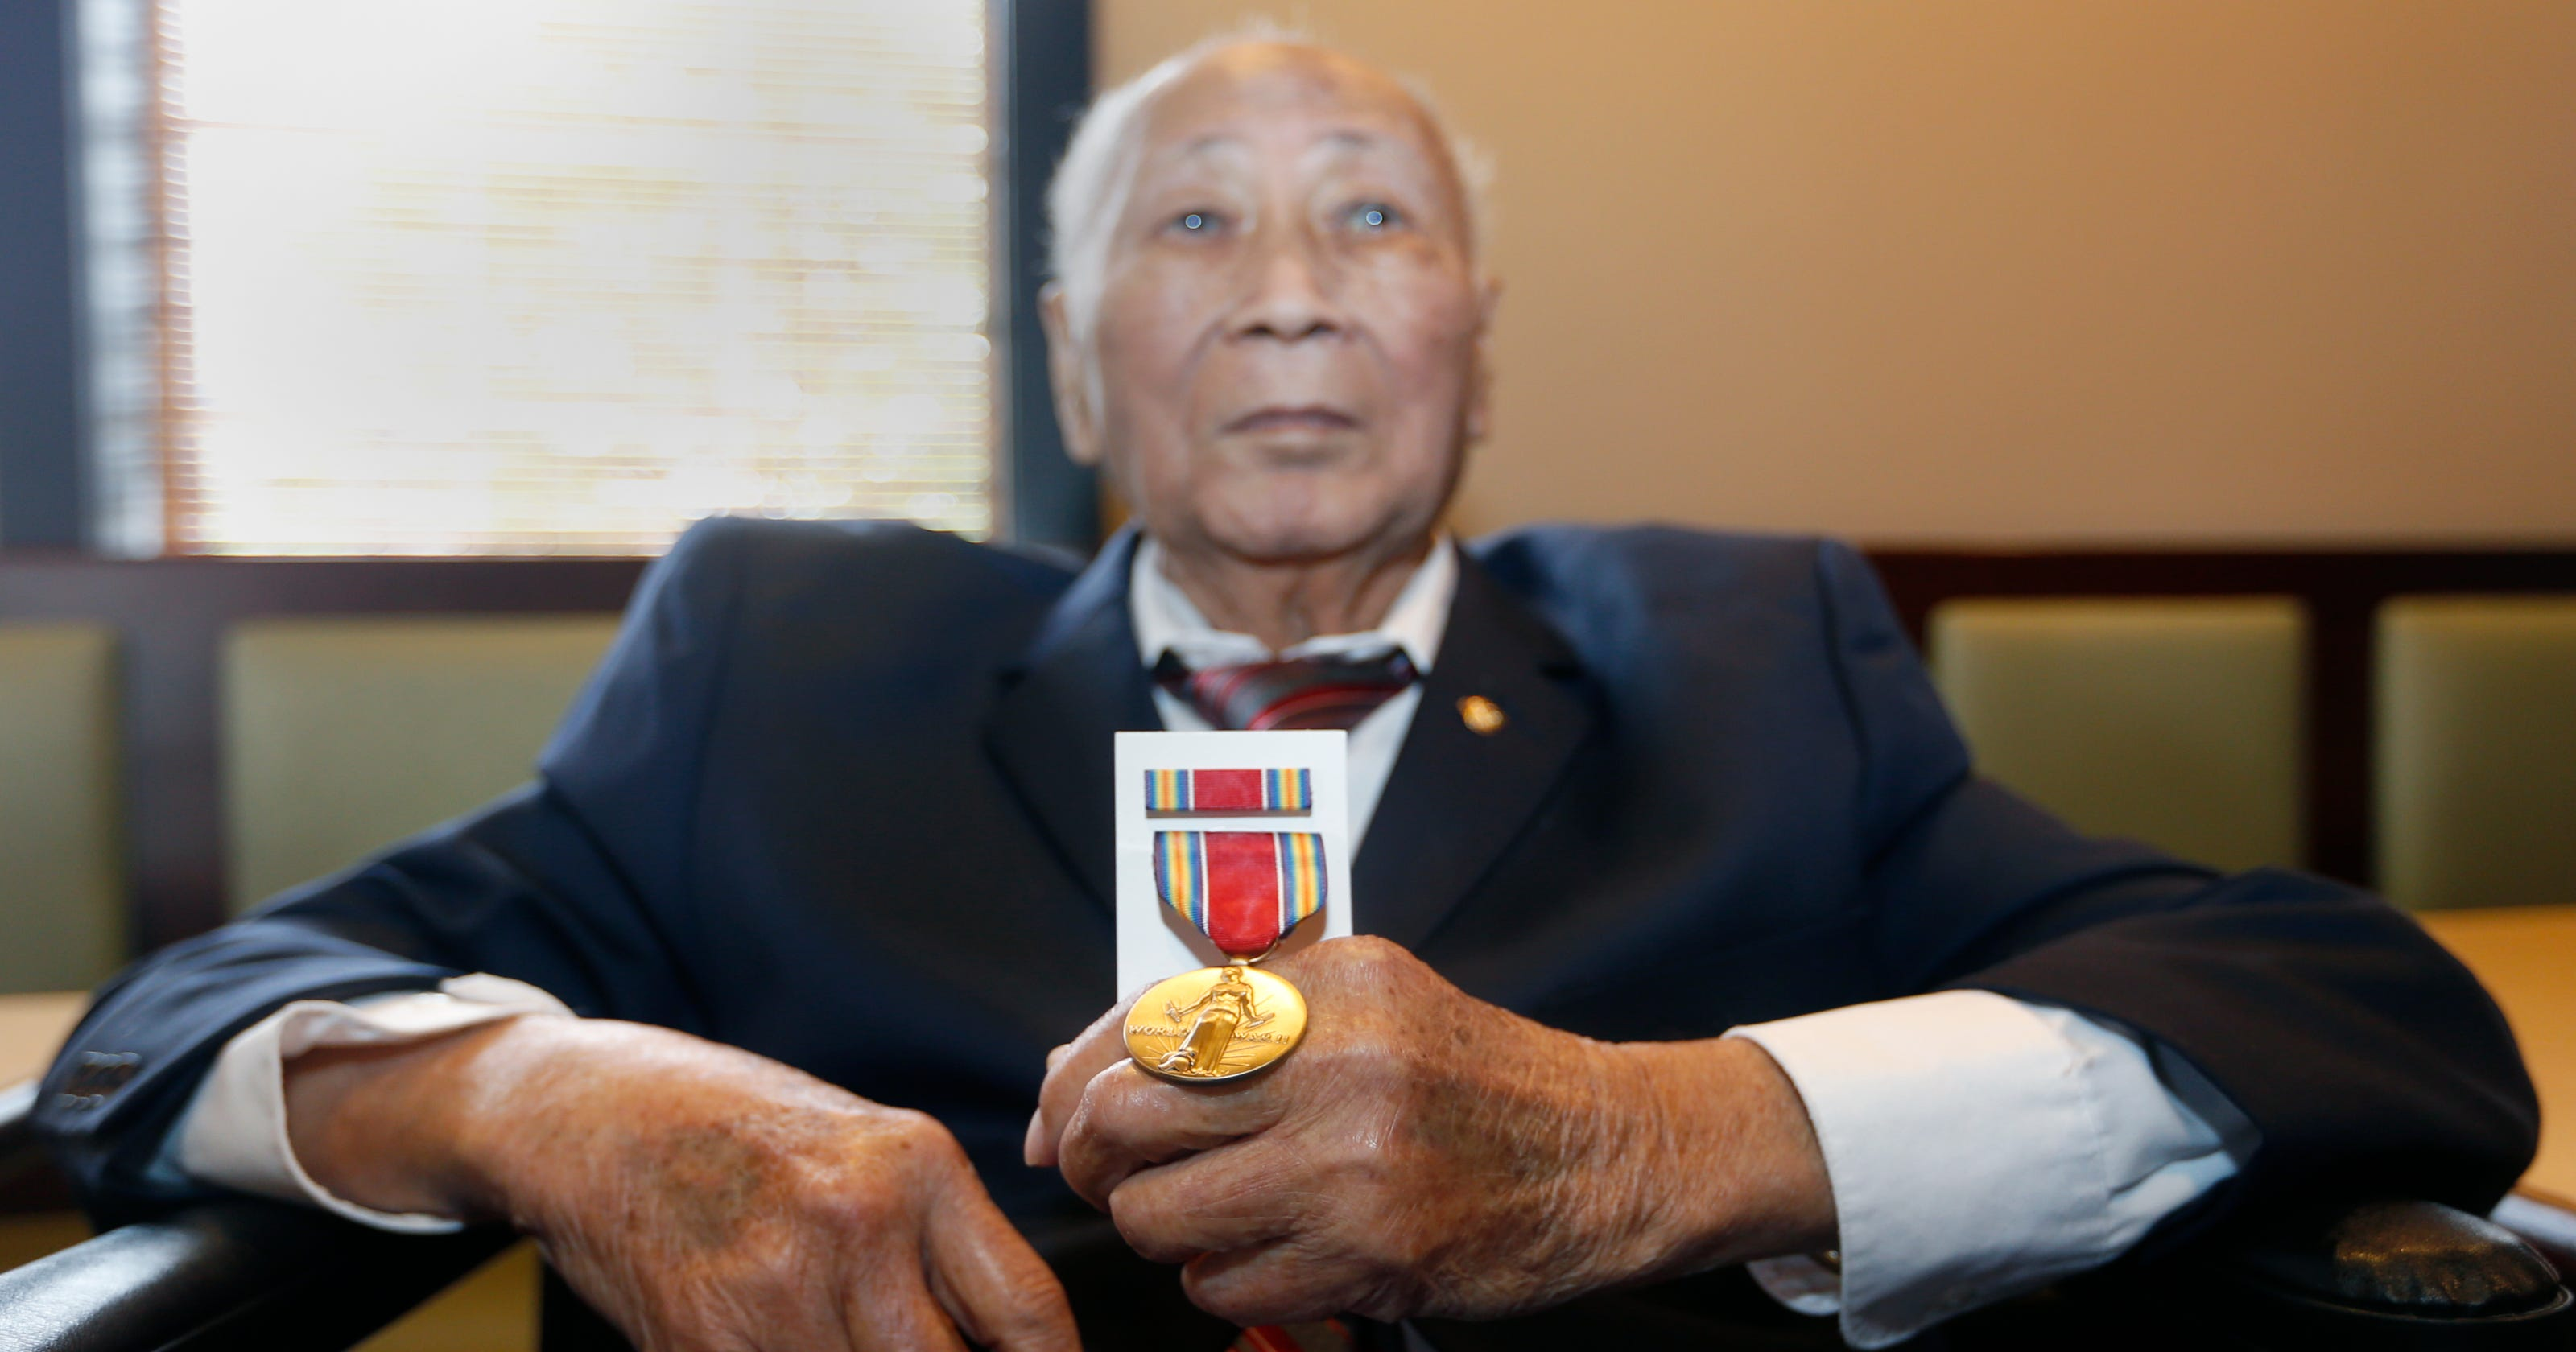 Cashew chicken founder David Leong gets WWII Army medals